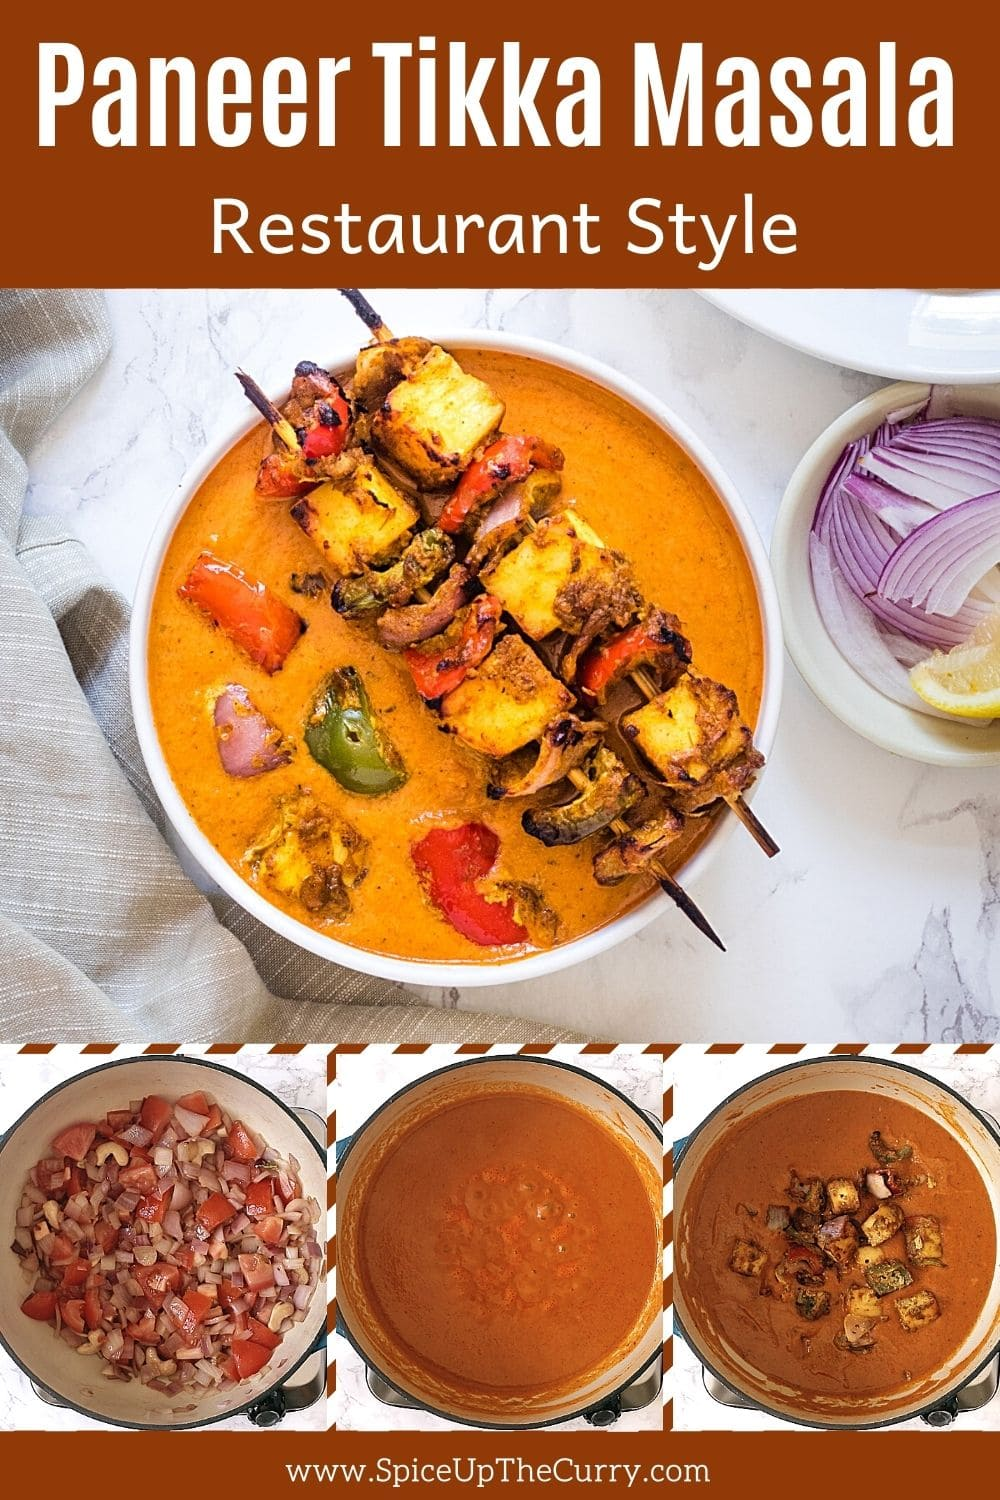 paneer tikka masala in a bowl with 3 steps pics at the bottom with text on the image for pinterest